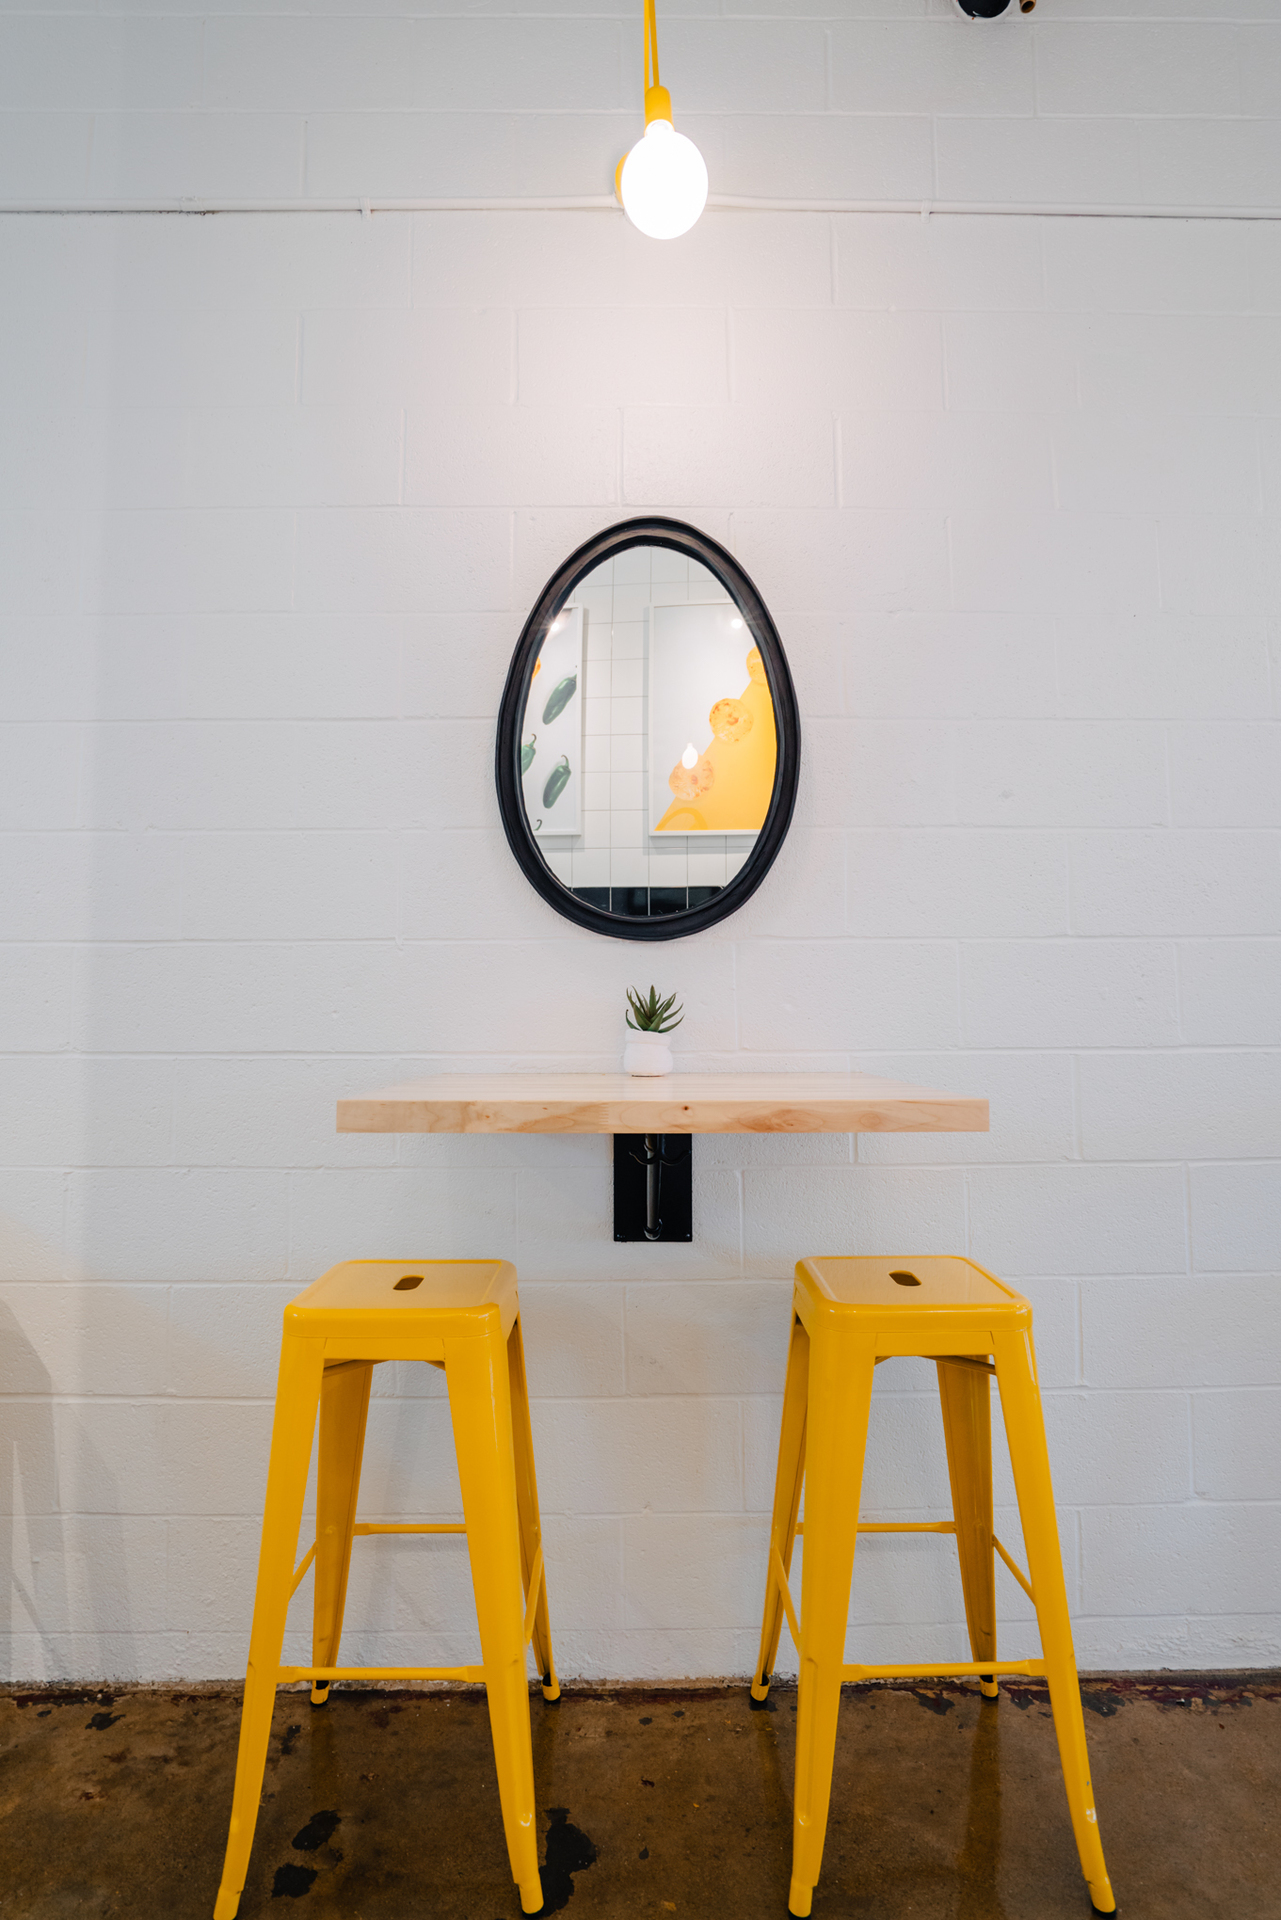 The Downtown Swing Arm Sconce, by Barn Light Electric, conforms to the fashionable minimalist approach while still remaining cable of performing vital tasks within any commercial décor.